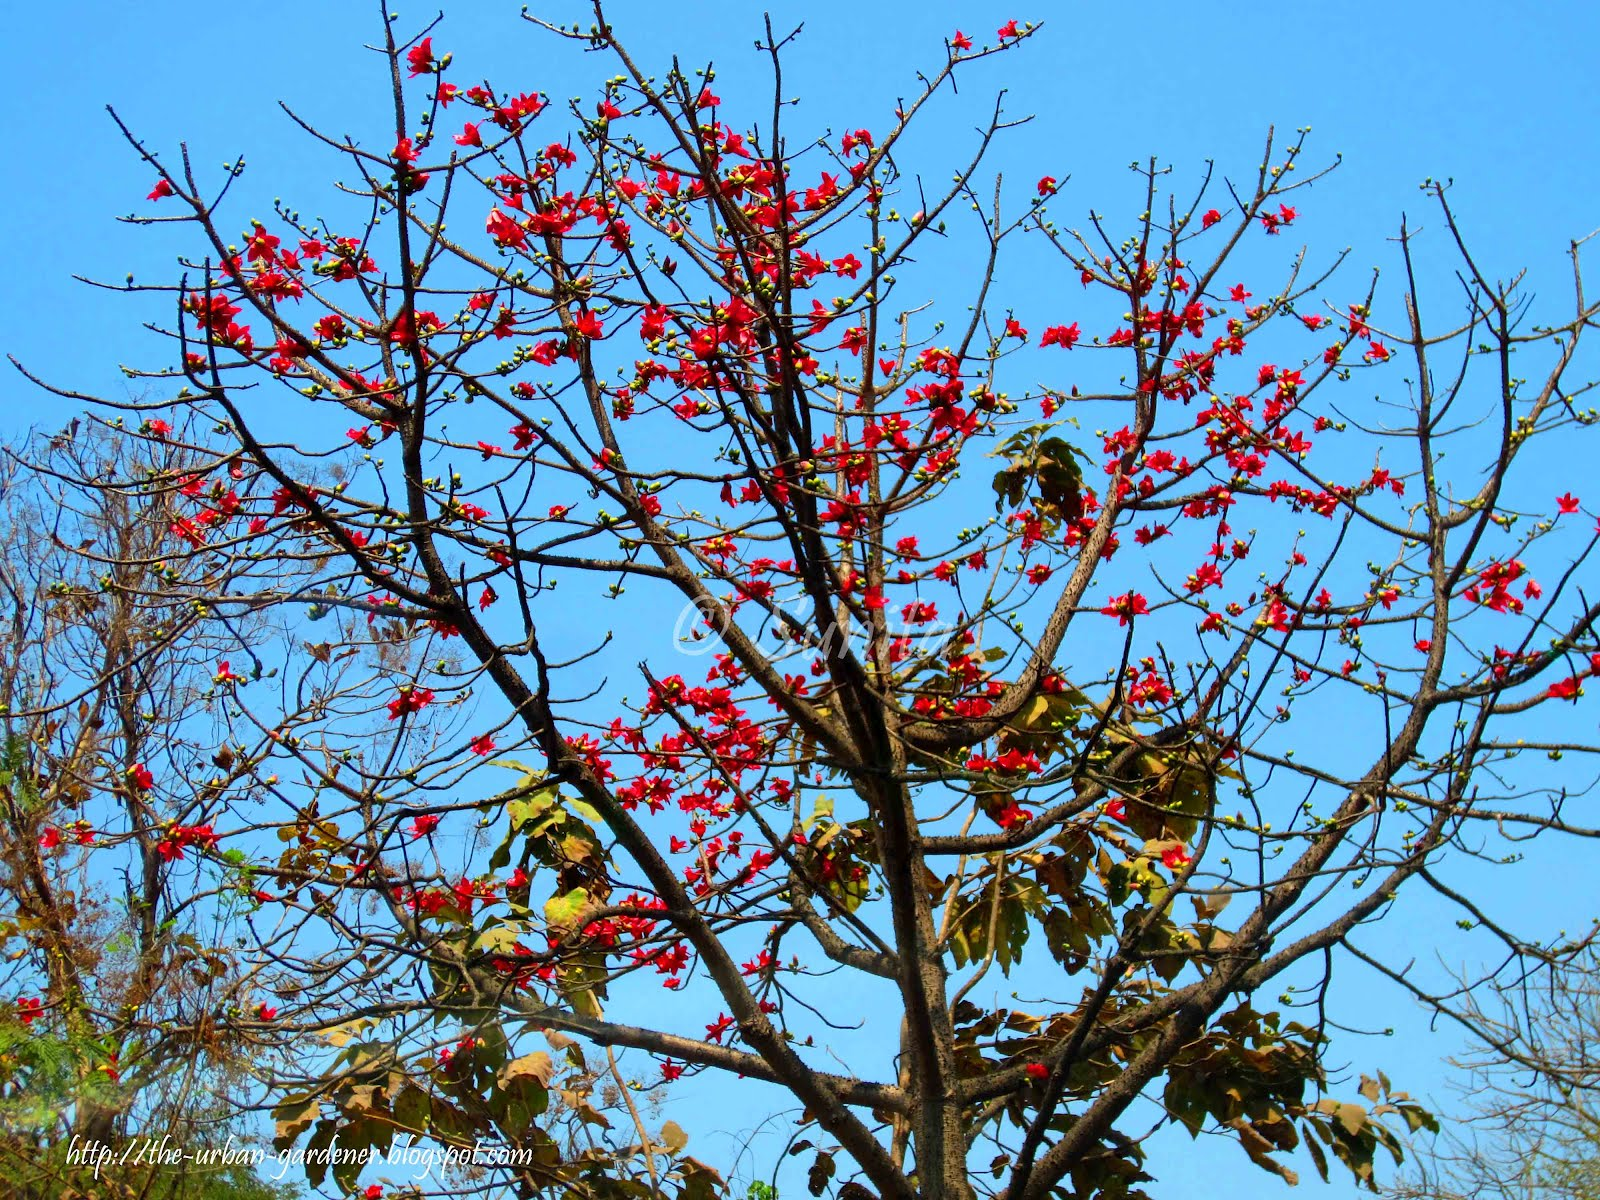 The urban gardener mumbai a time for blooming for Tree with red flowers